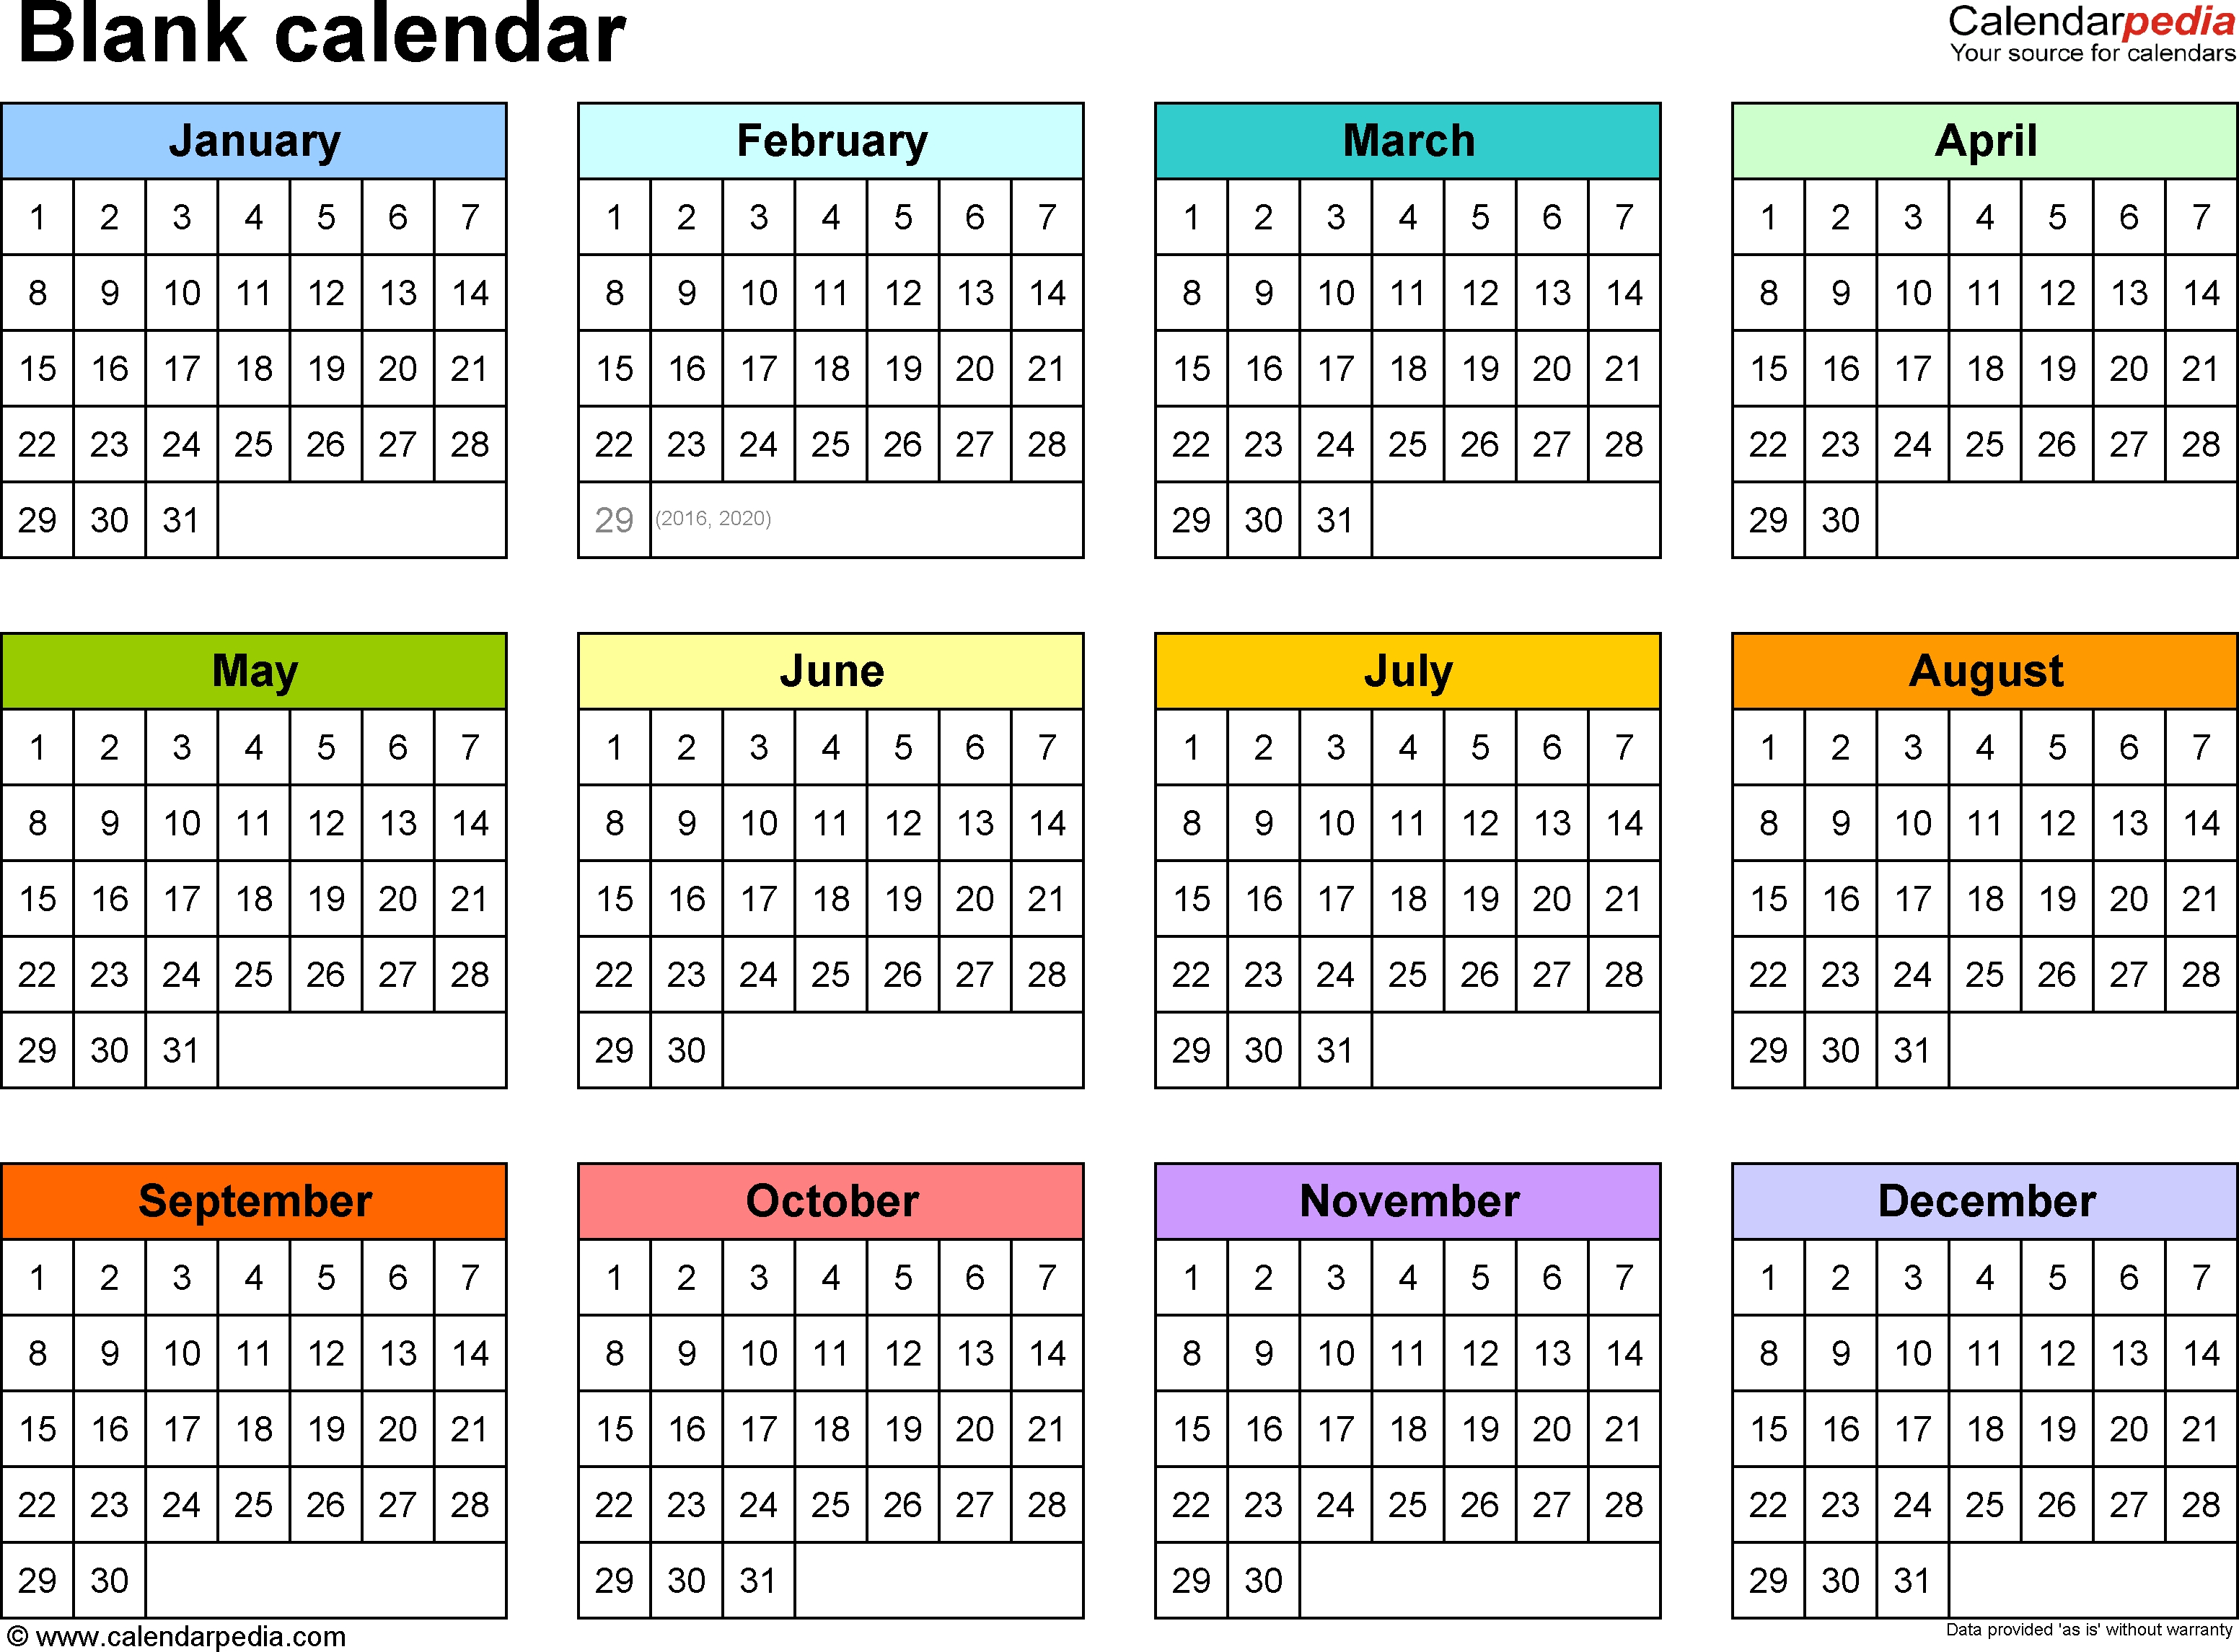 Blank Calendars - Free Printable Microsoft Excel Templates